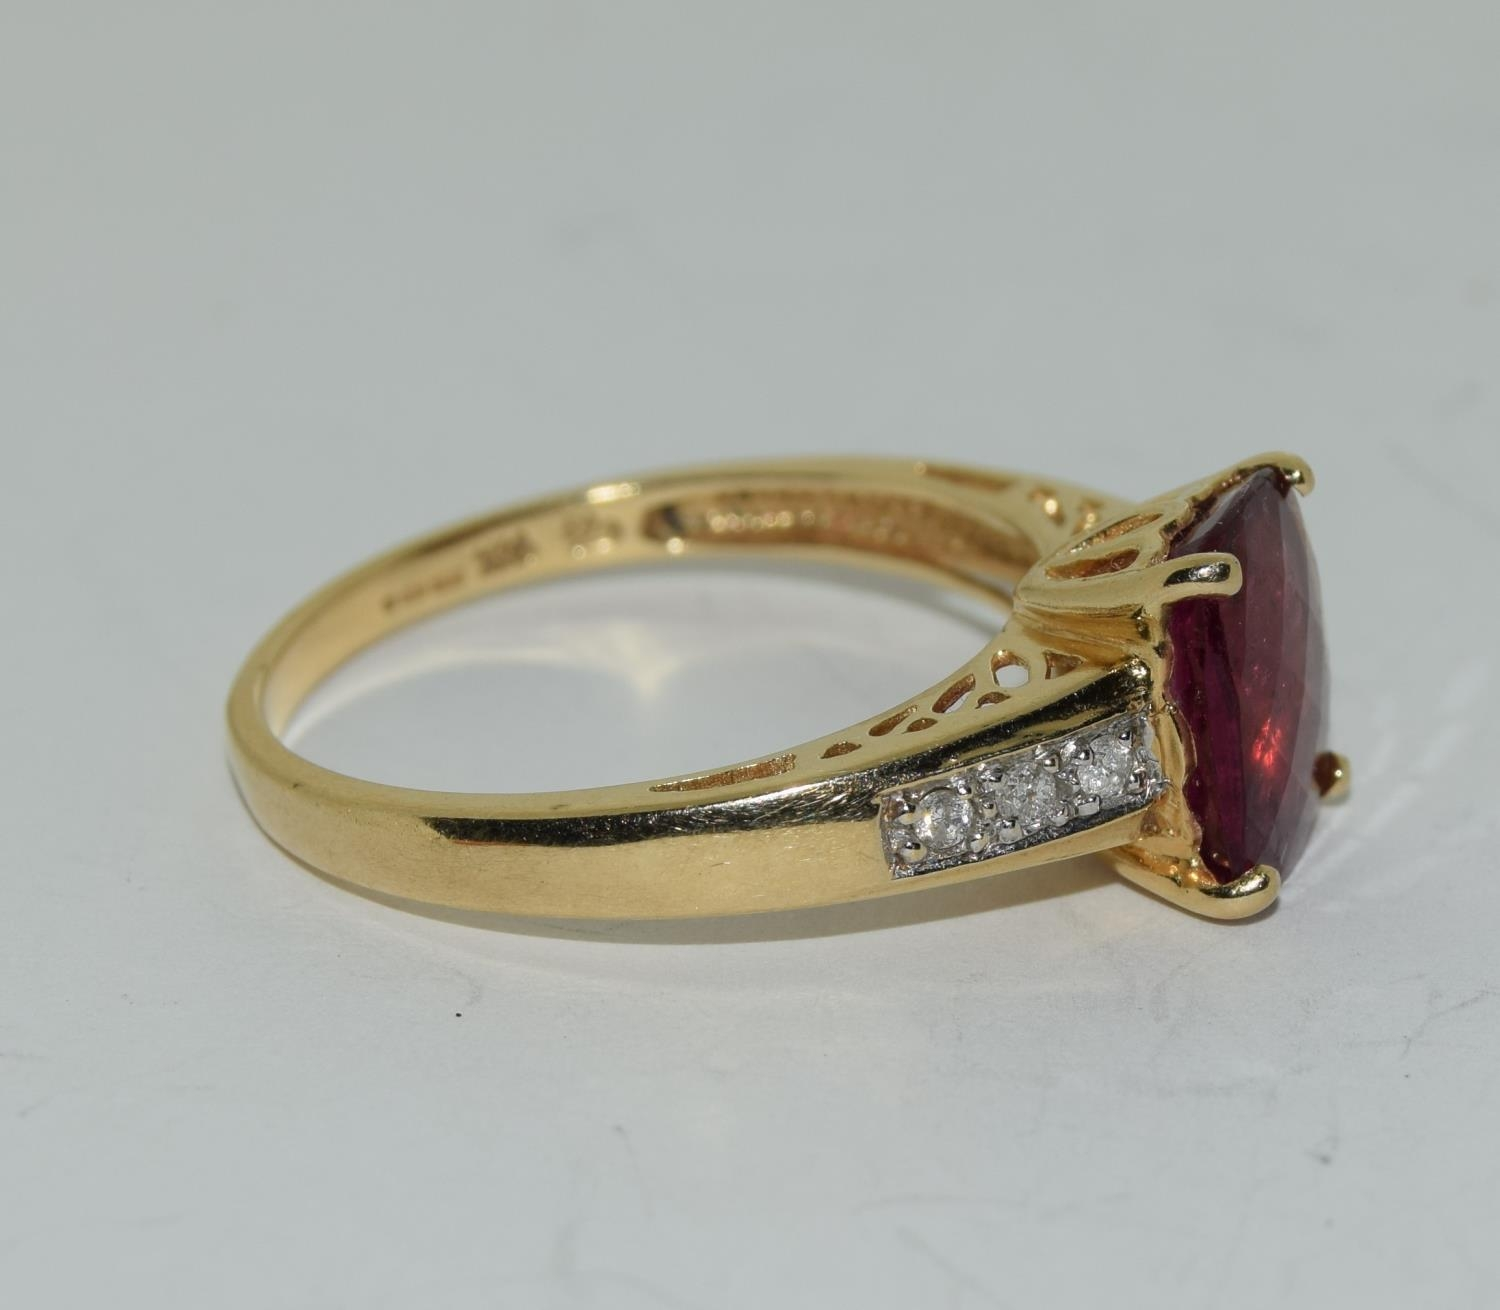 14ct gold ladies ruby and diamond ring ,ruby approx 3ct daimonds to the shoulders size T - Image 5 of 6